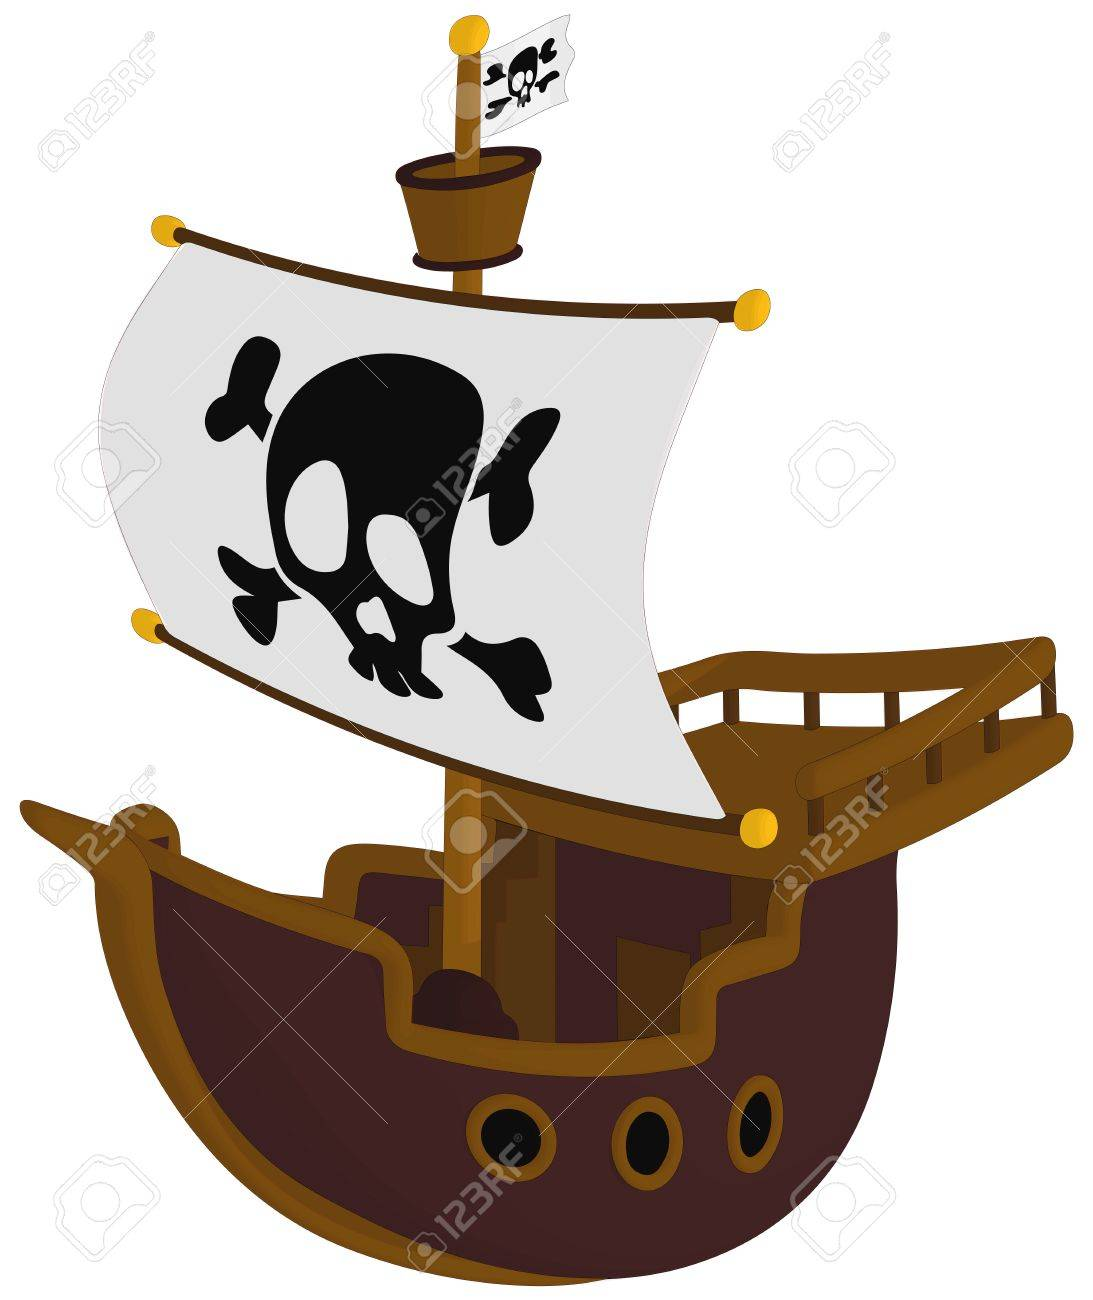 1093x1300 Pirate Ship Isolated On A White Background. Royalty Free Cliparts